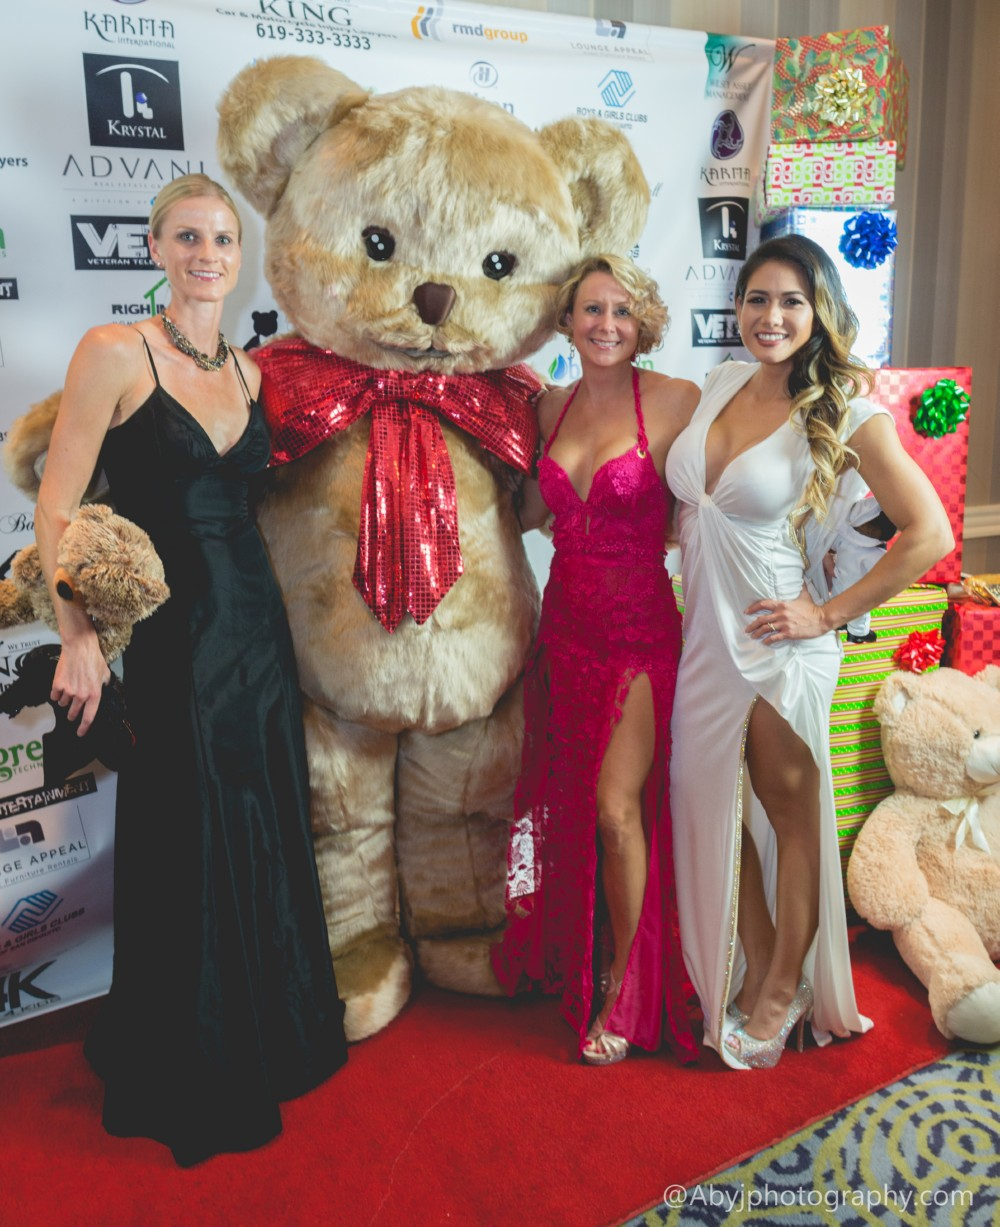 ABYJ_Photography_2016_Teddy_Ball - 105.jpg